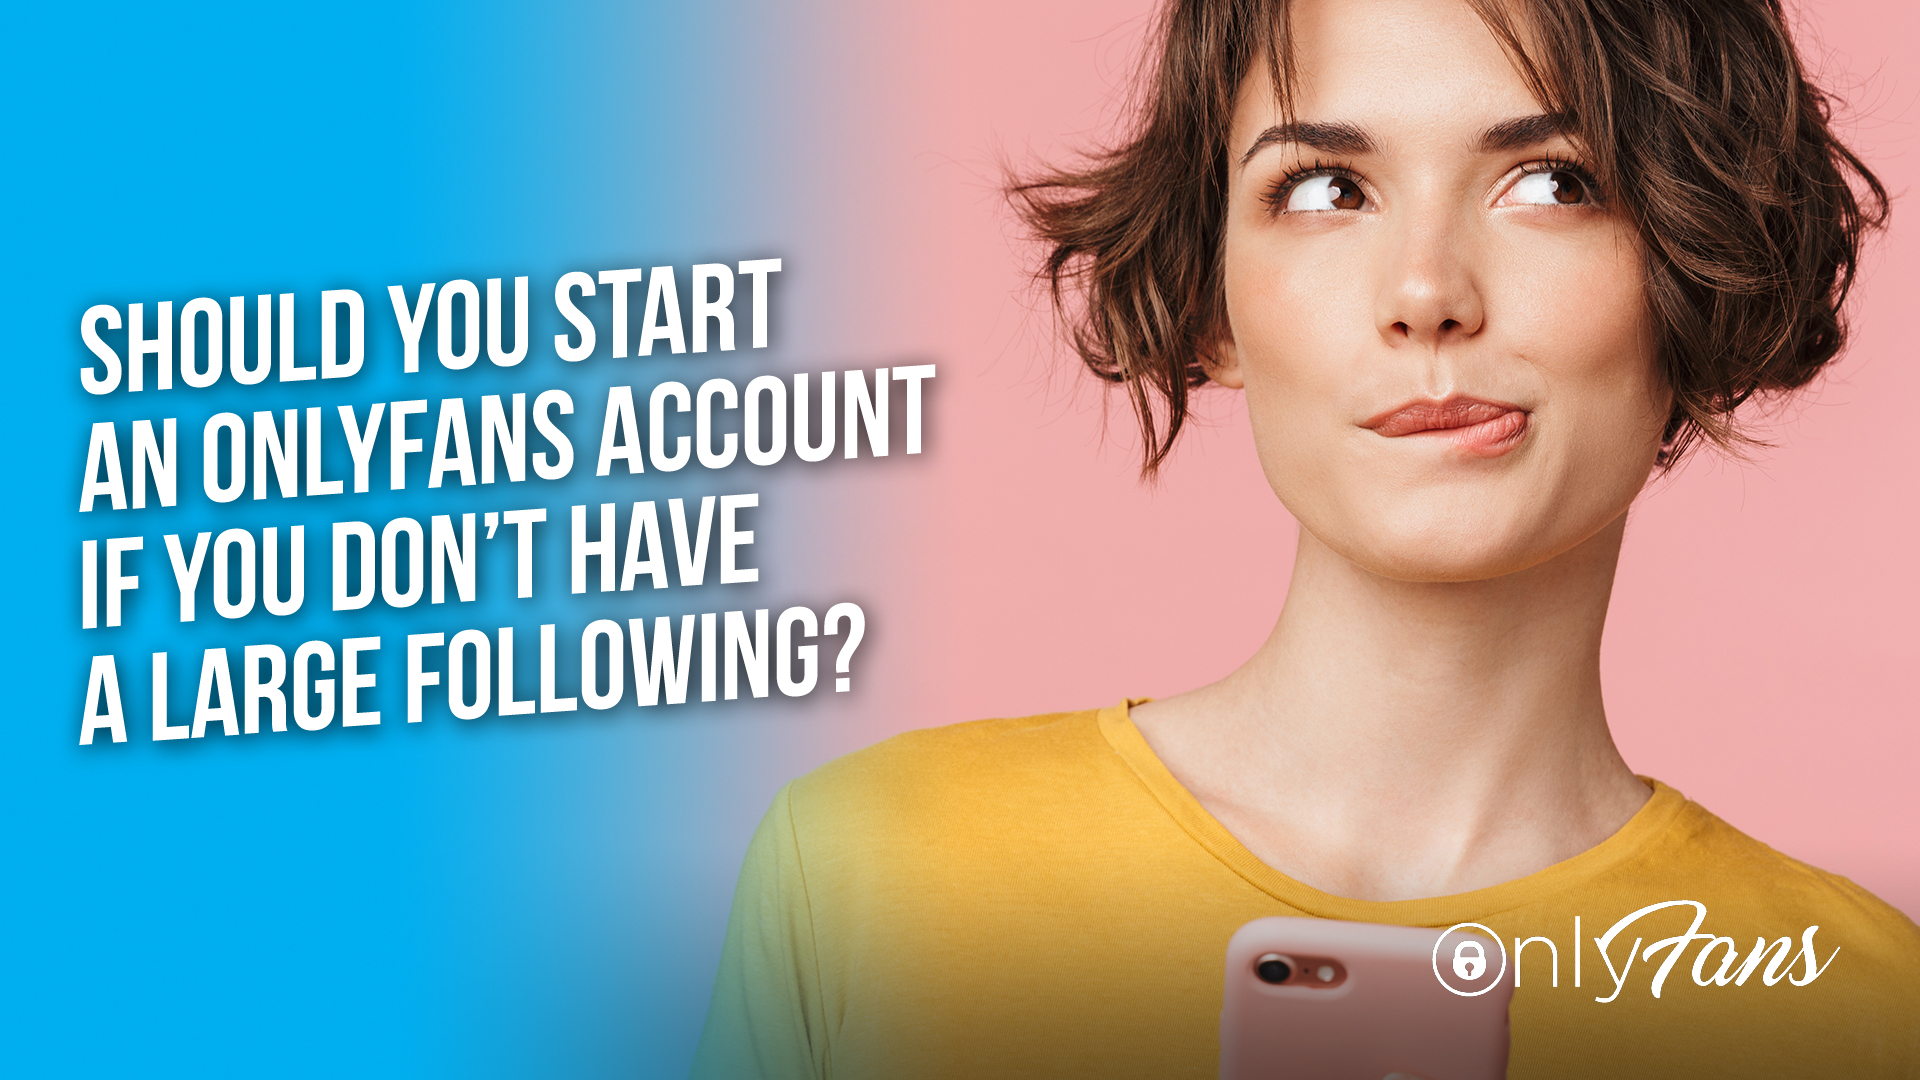 Should You Start an OnlyFans Account if You Don't Have a Large Following